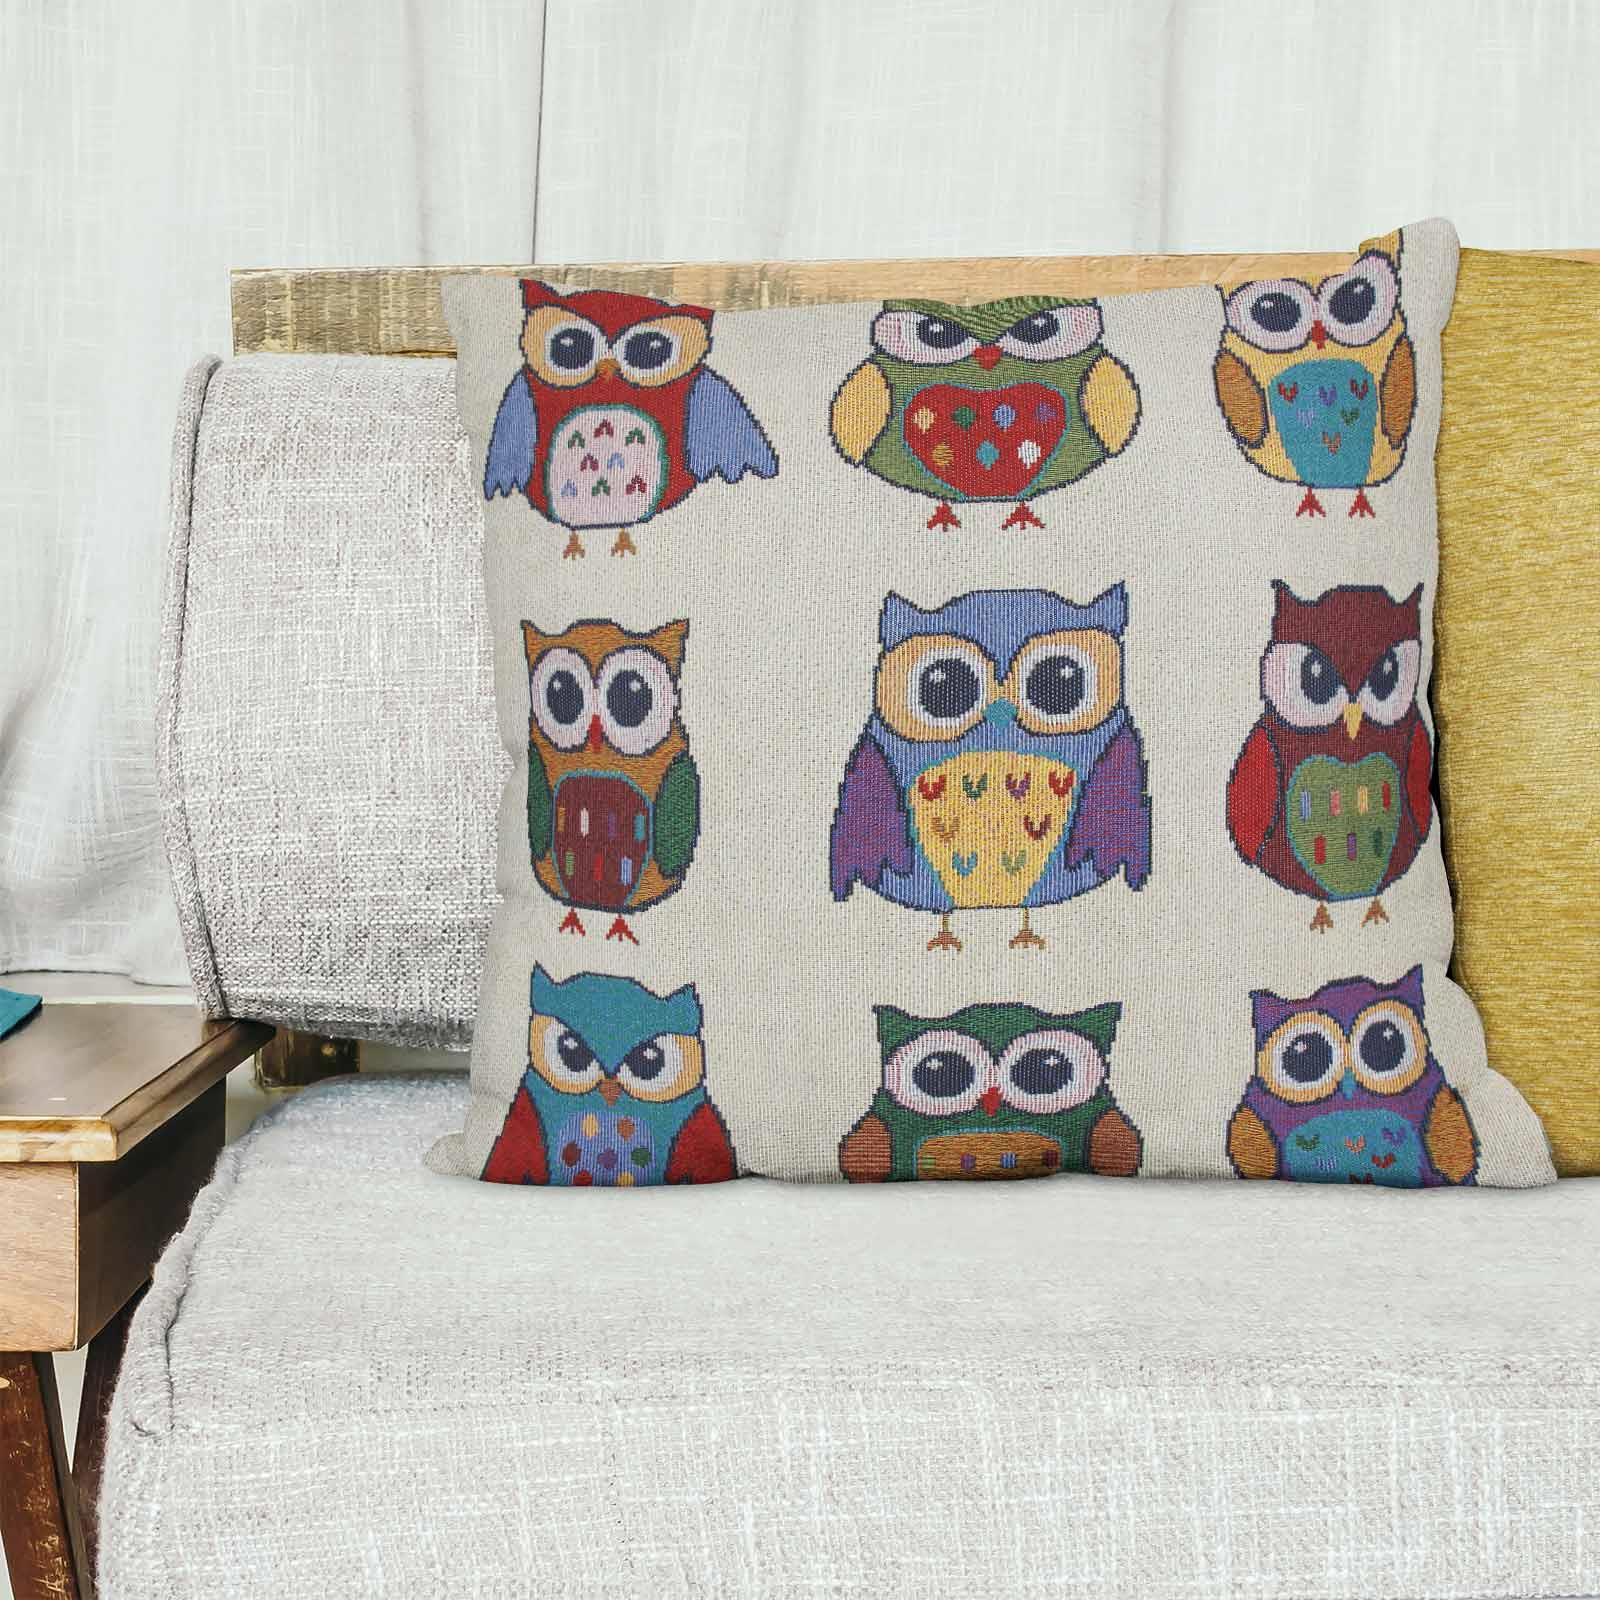 Tapestry-Cushion-Covers-Vintage-Pillow-Cover-Collection-18-034-45cm-Filled-Cushions thumbnail 162